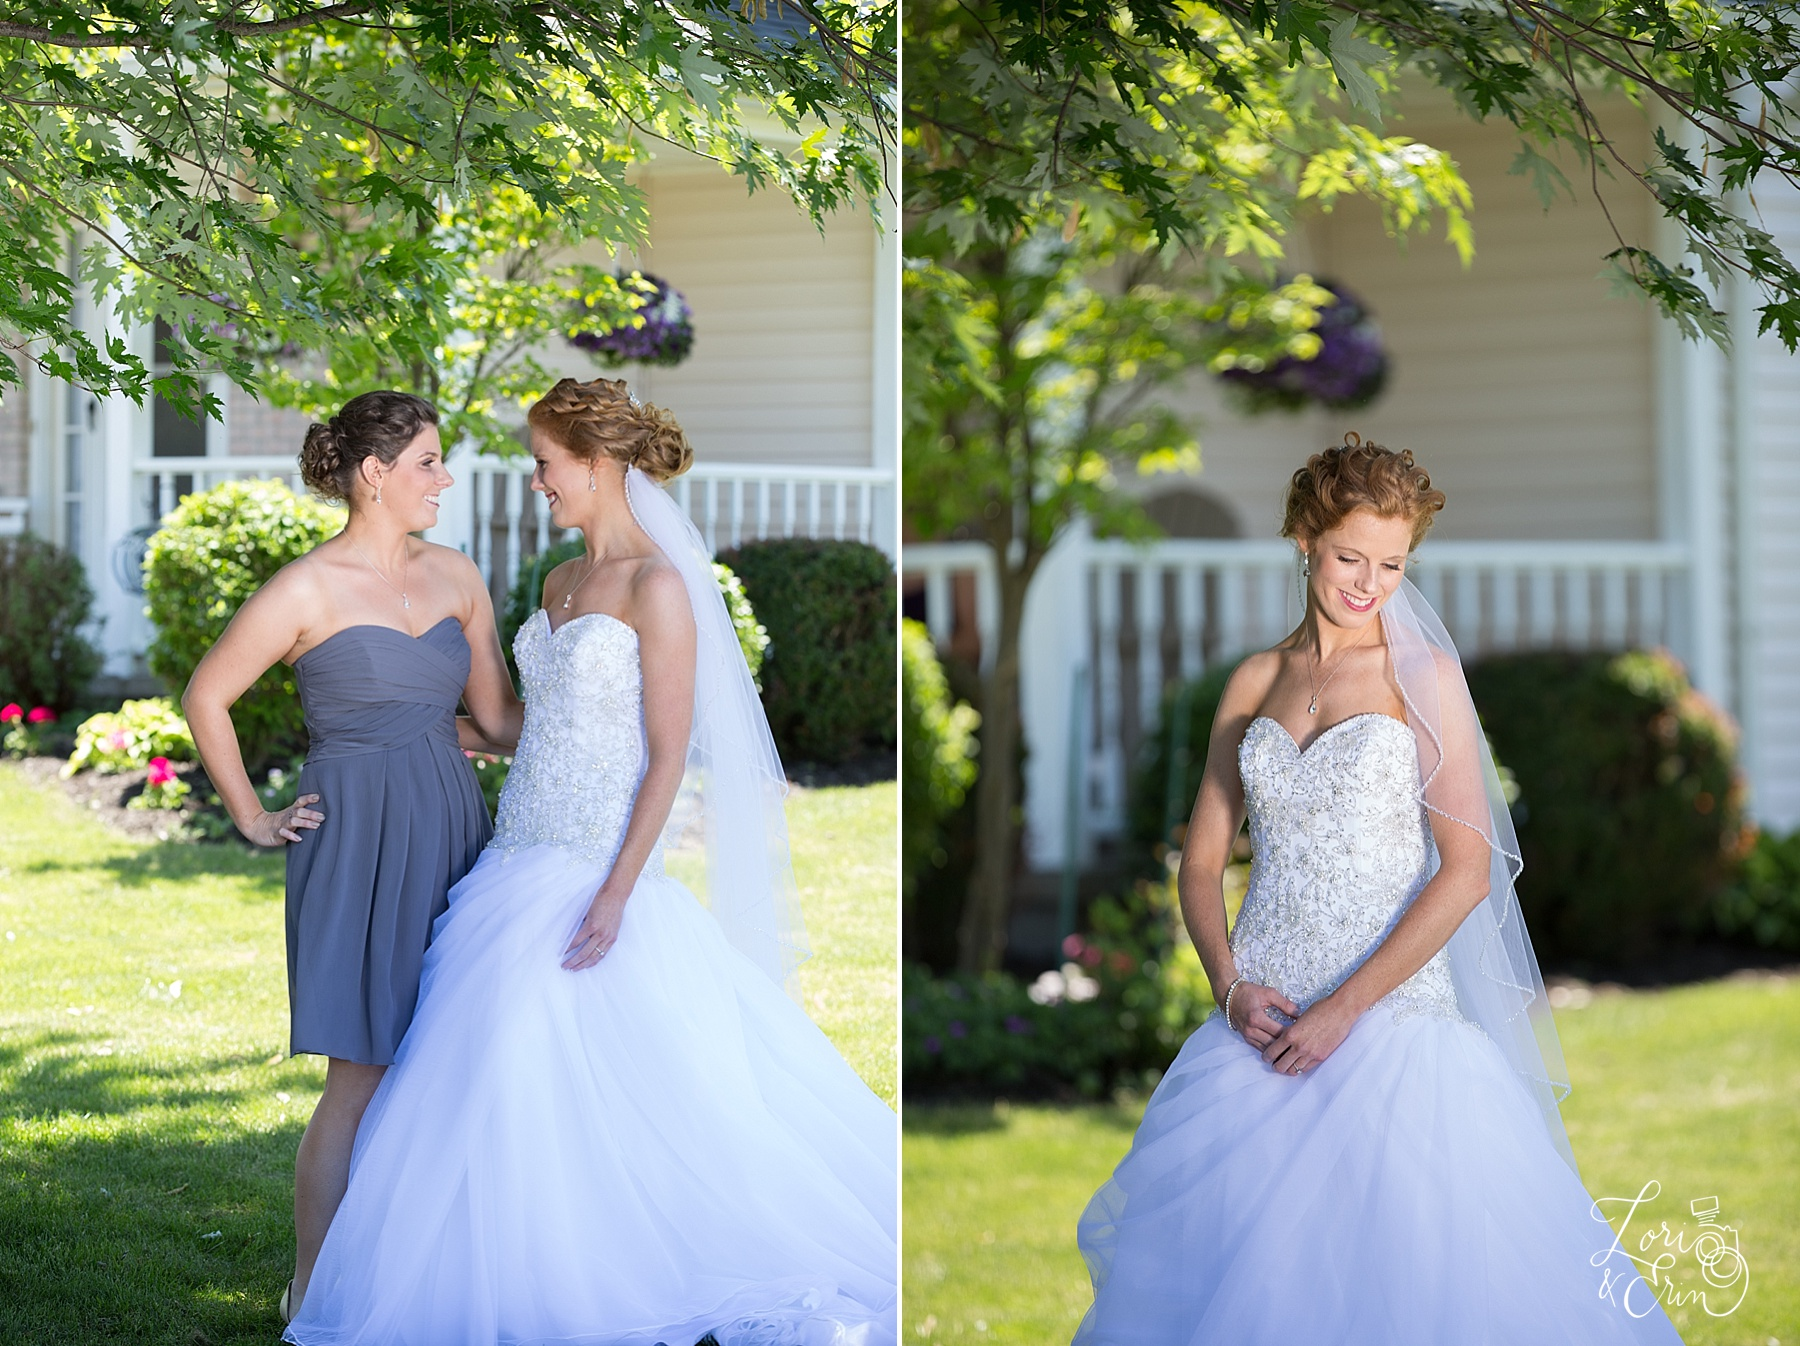 Rochester NY Wedding Photography, Lori & Erin Photography